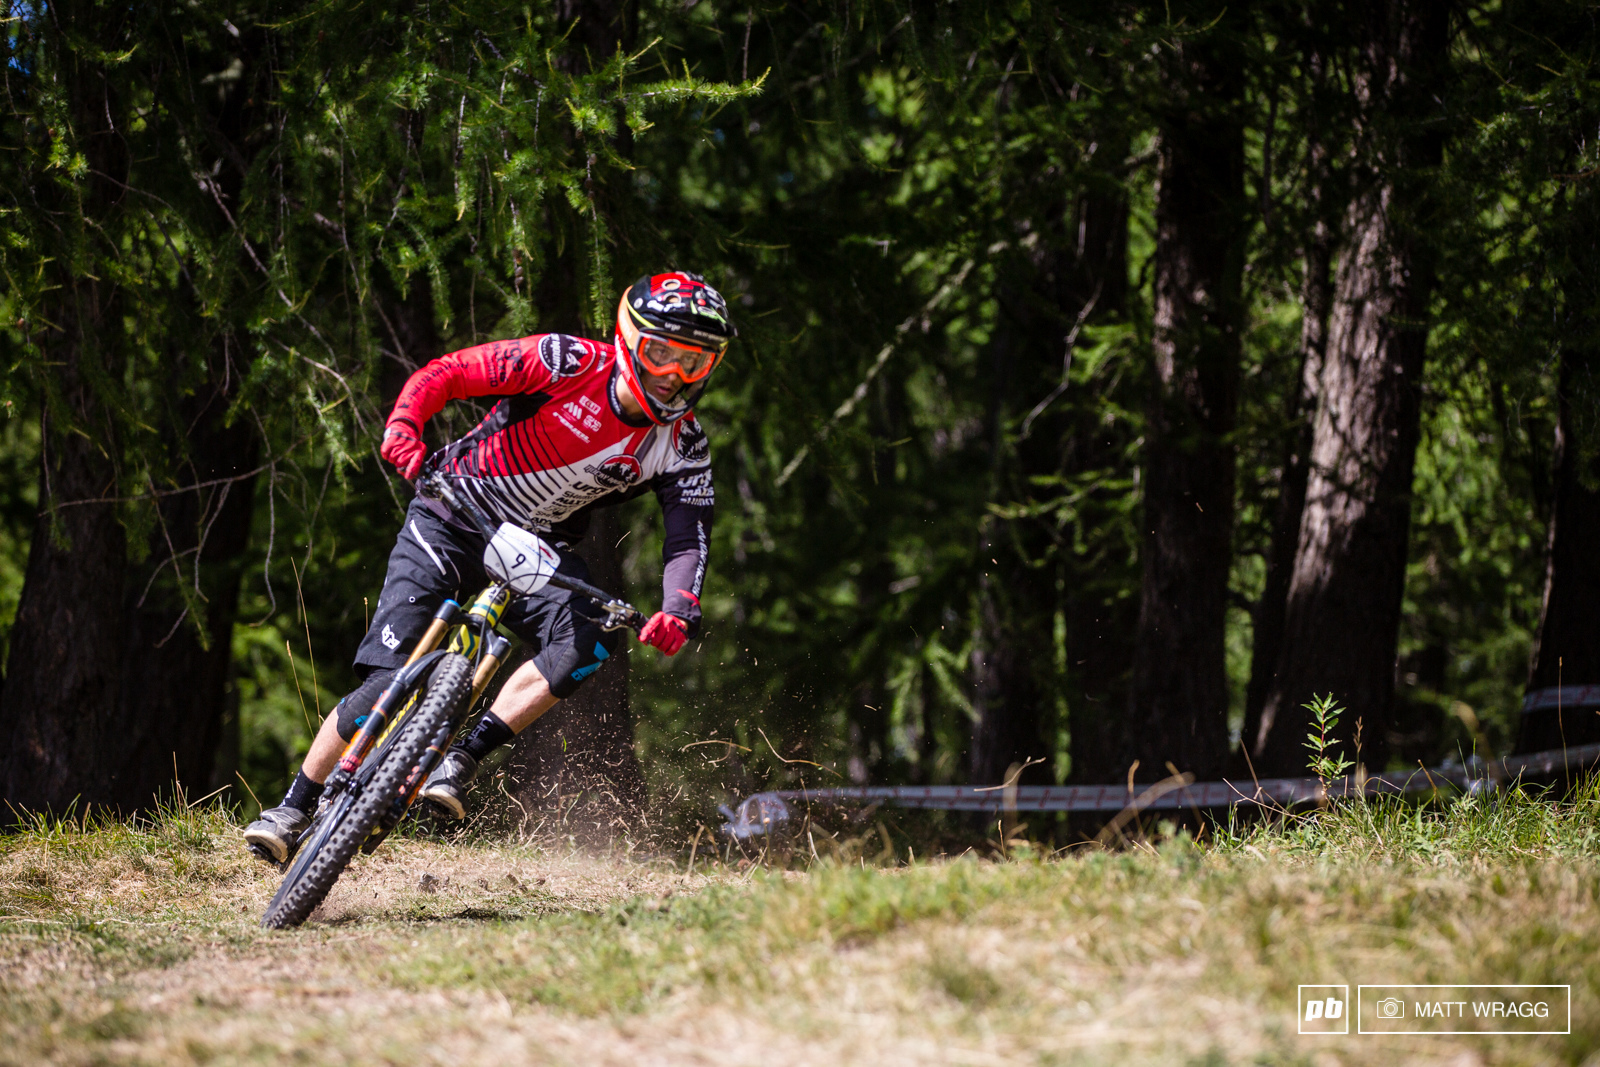 Alex Cure has a close fight with Jerome Clementz all weekend swapping seconds over the seven stages. In the end Cure got the better of the 2013 EWS World Champion by just 5 seconds over an hour of racing.